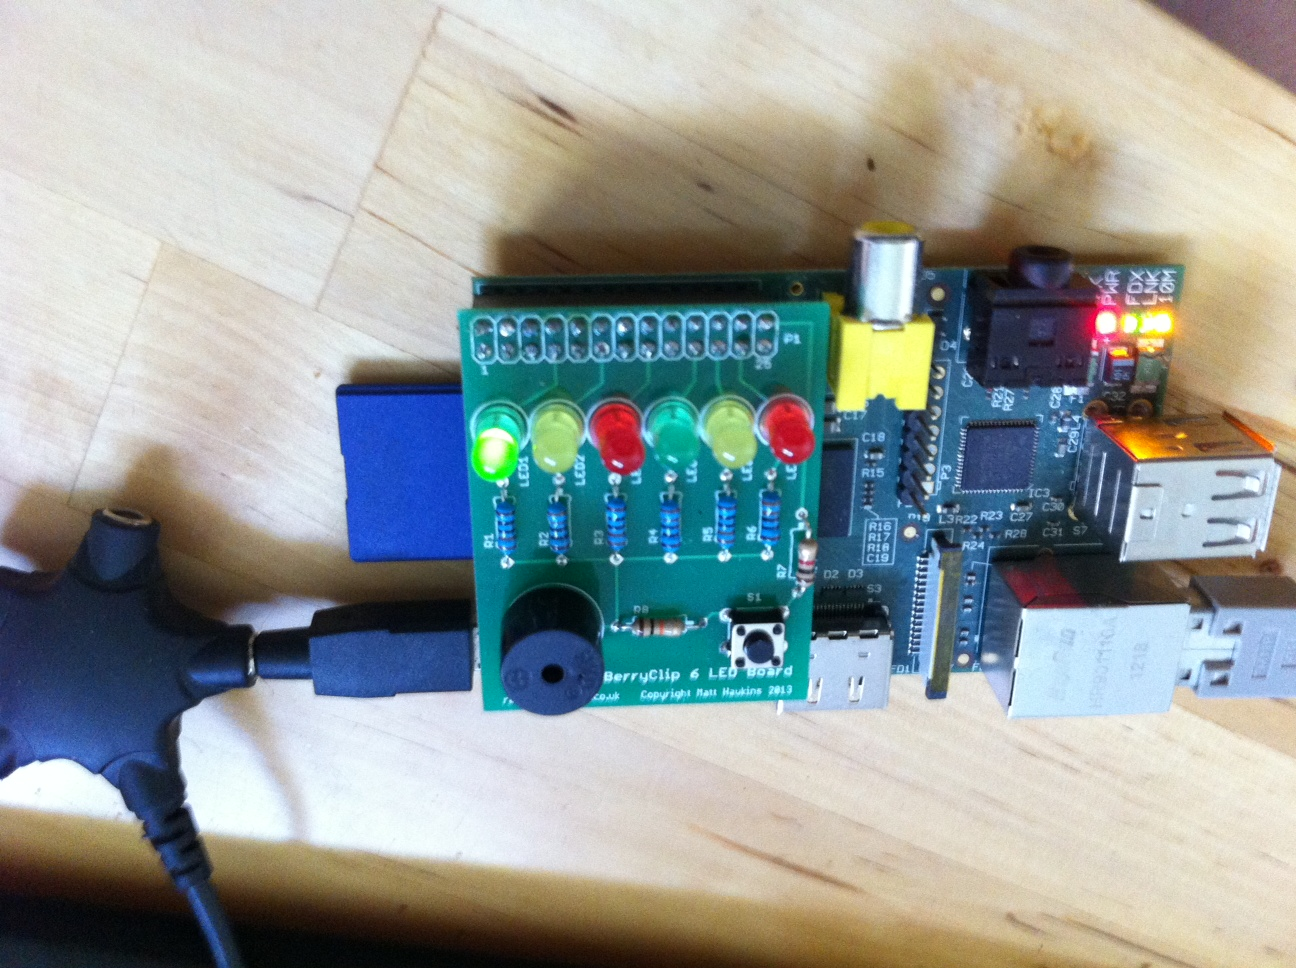 Raspberry PI and BerryClip